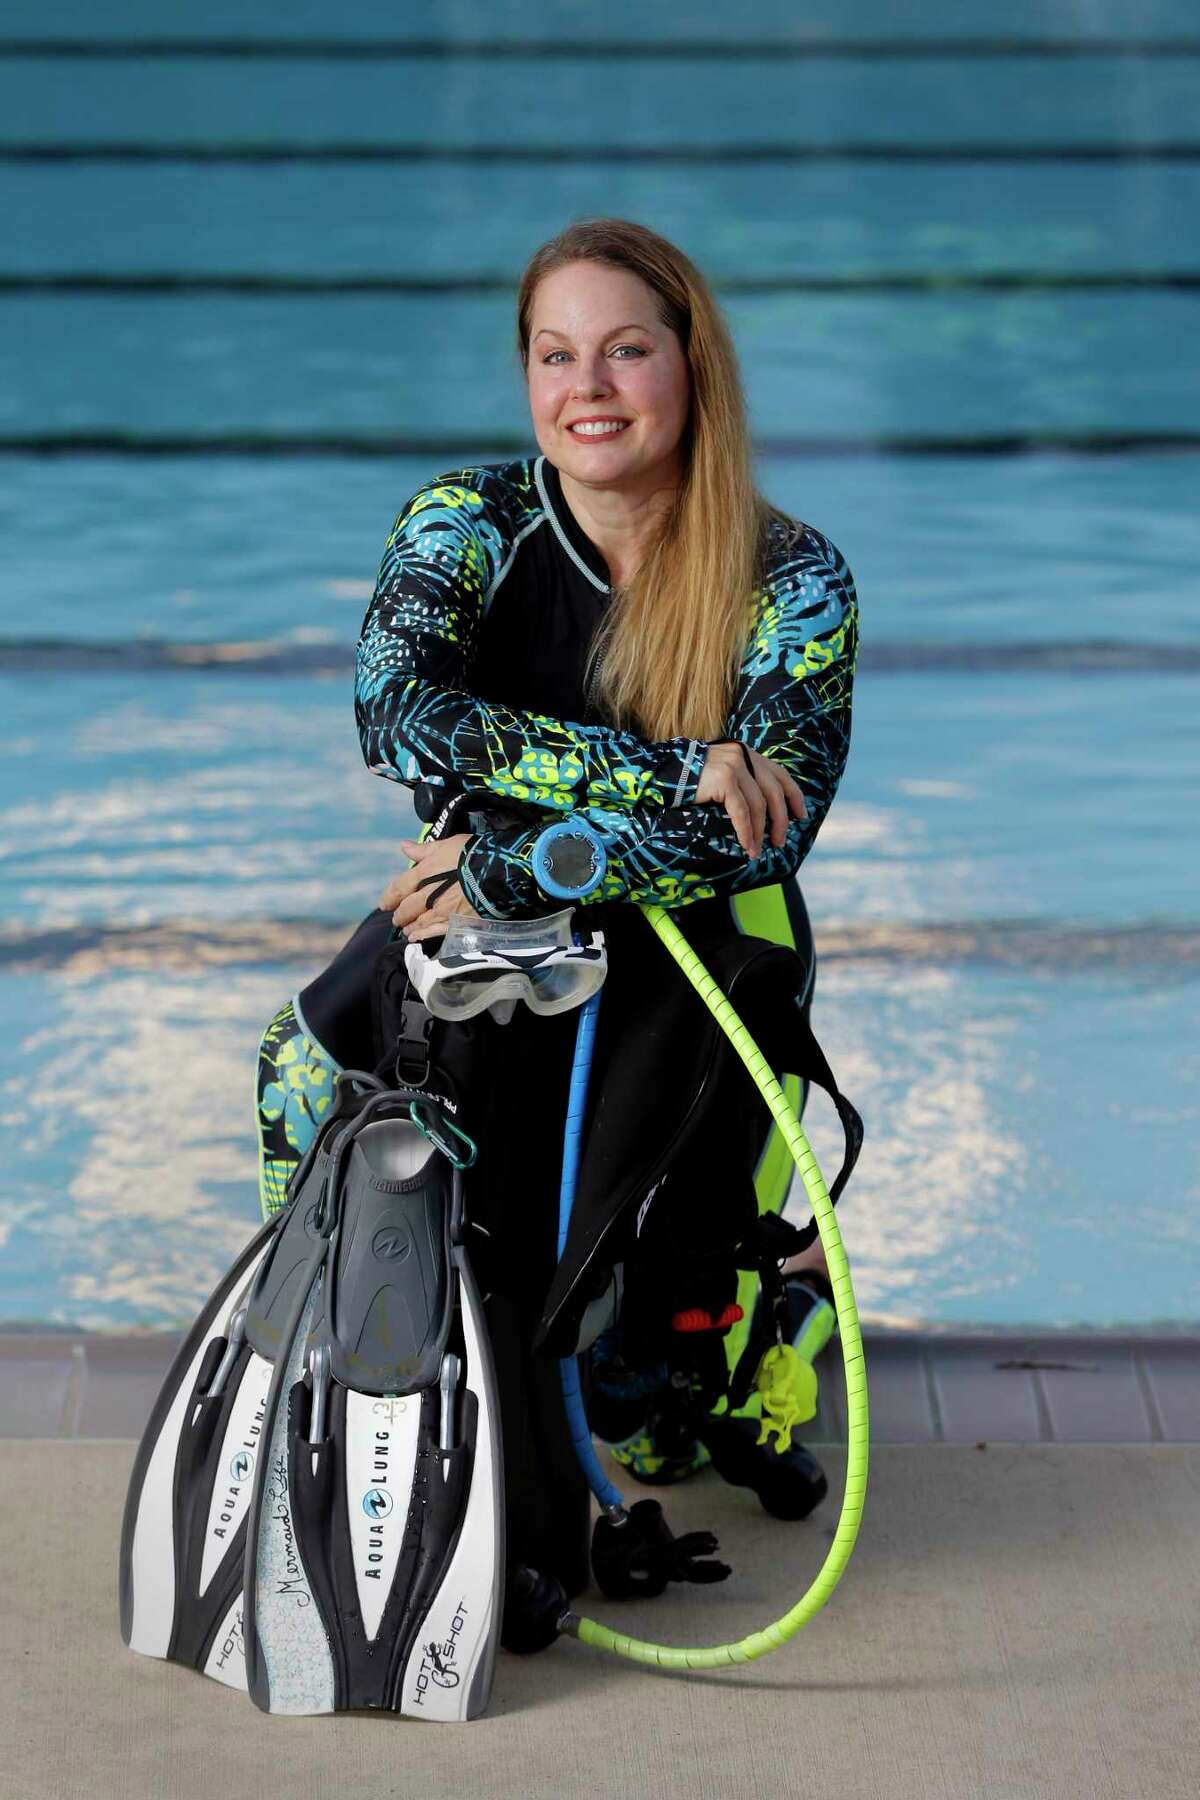 Caroline Wolbrecht, an avid scuba diver, at the Dow Park swimming pool near her home Wednesday, Aug. 25, 2021 in Deer Park, TX. Wolbrecht thought she had skin bends which would end her diving. It turned out to be a condition known as PFO, which she had corrected through surgery, allowing her to continue diving.